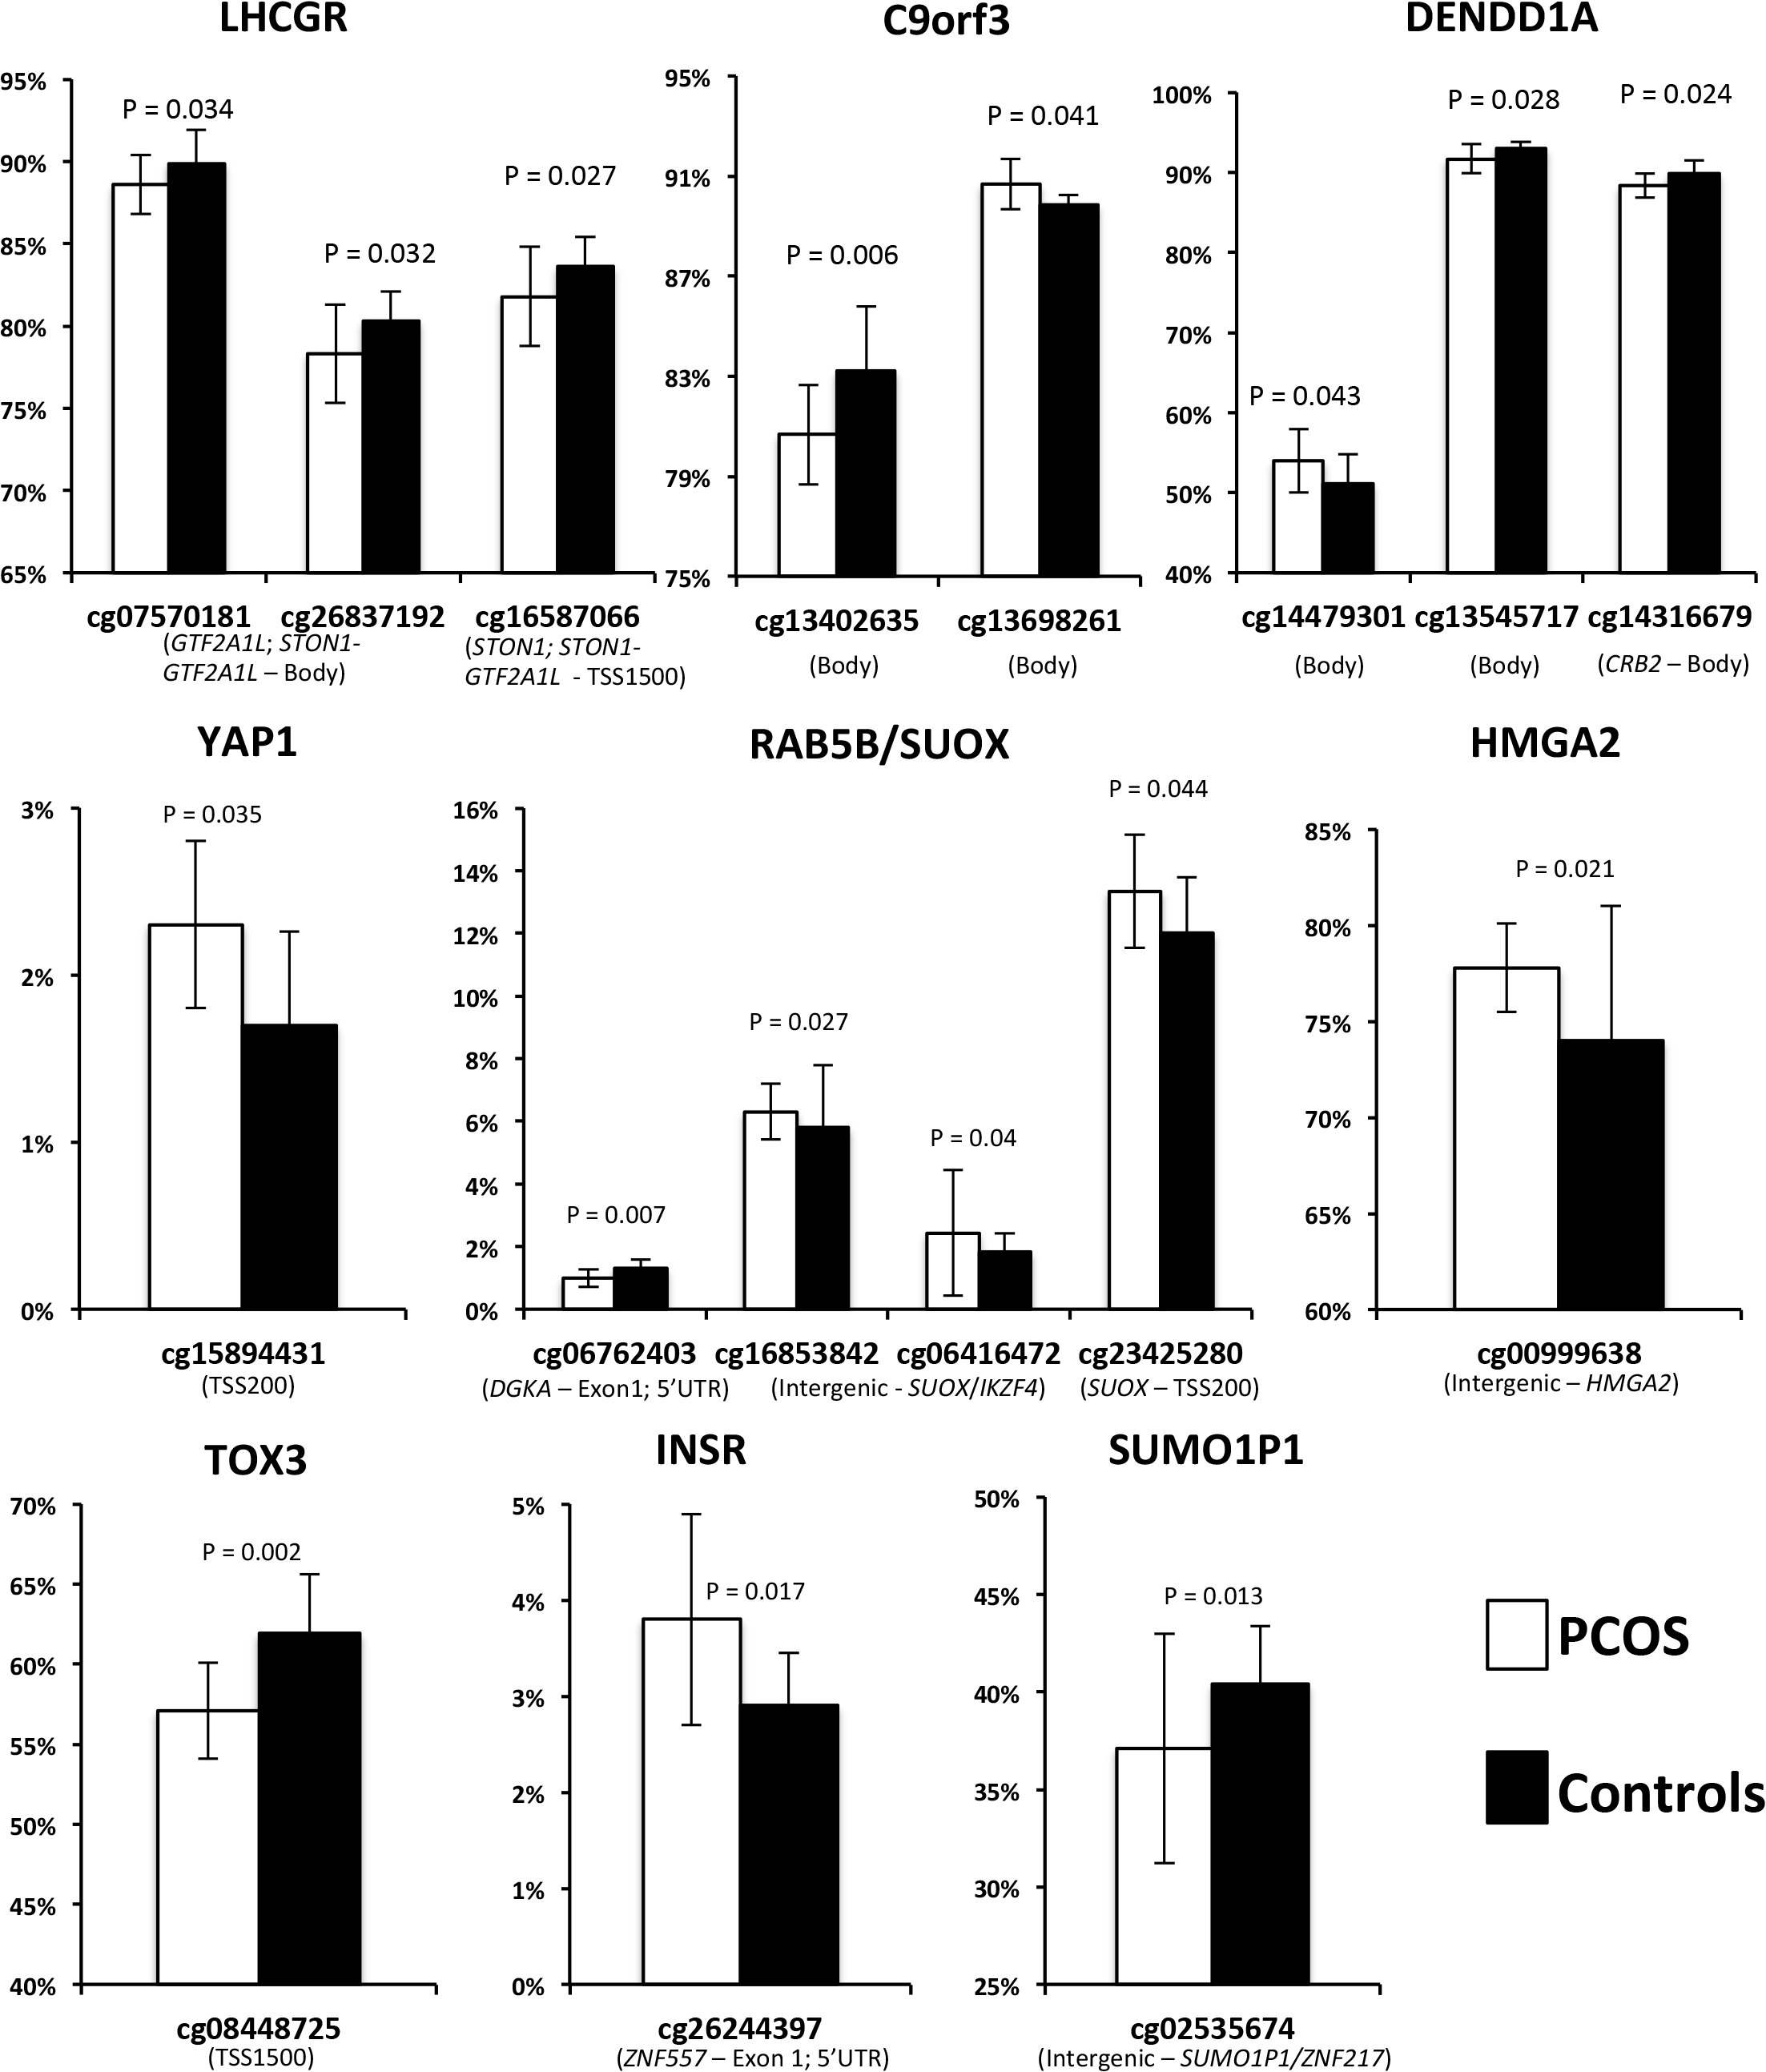 Methylation (Beta) levels at CpG sites with significantly different methylation between PCOS and controls.